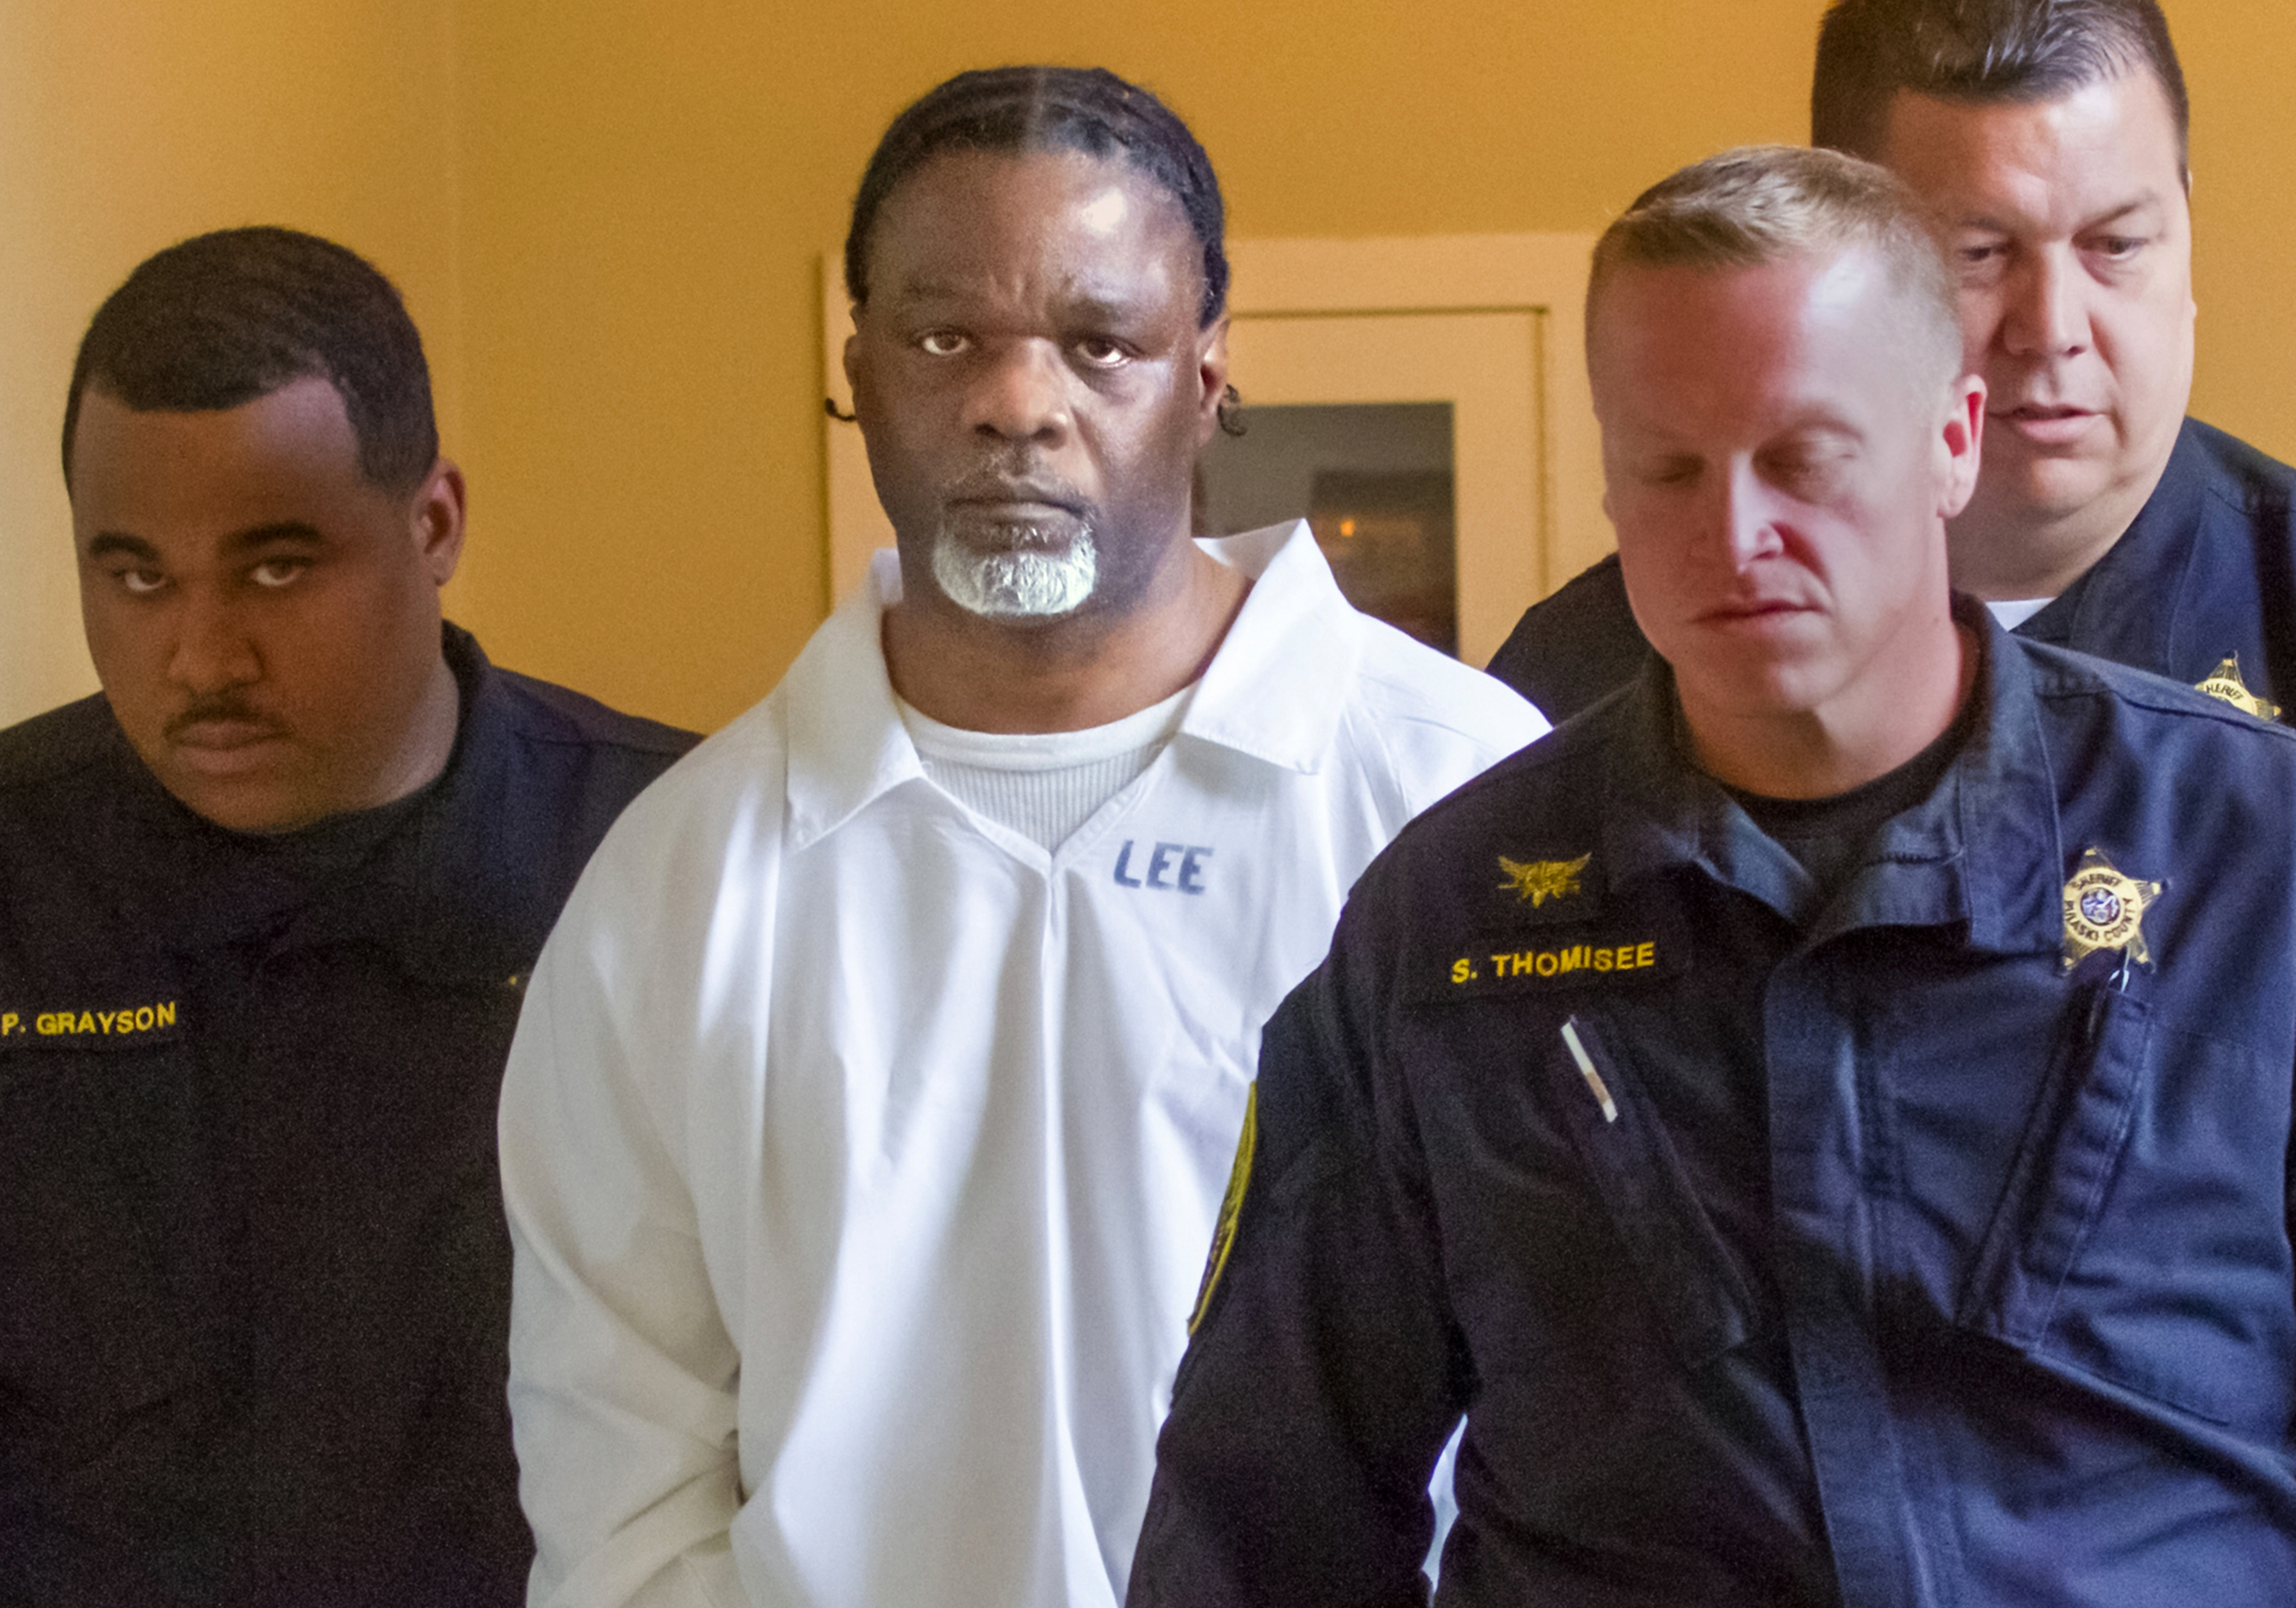 https://www.vice.com/en_us/article/the-tragic-life-and-cruel-execution-of-ledell-lee